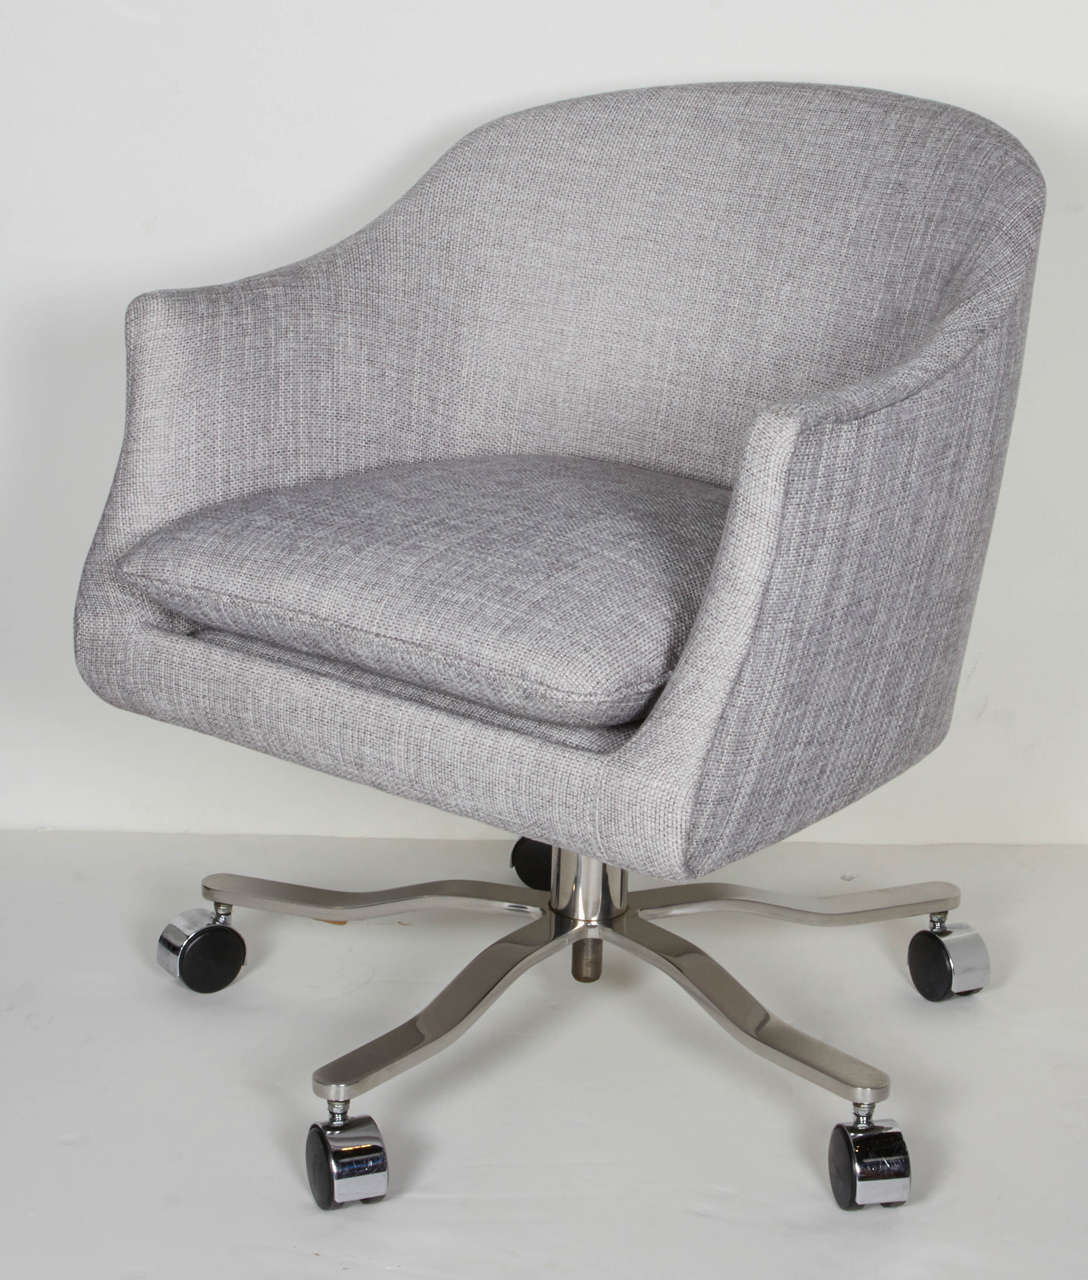 Mid-Century Modern Swivel Desk Chair Designed by Ward Bennett 3